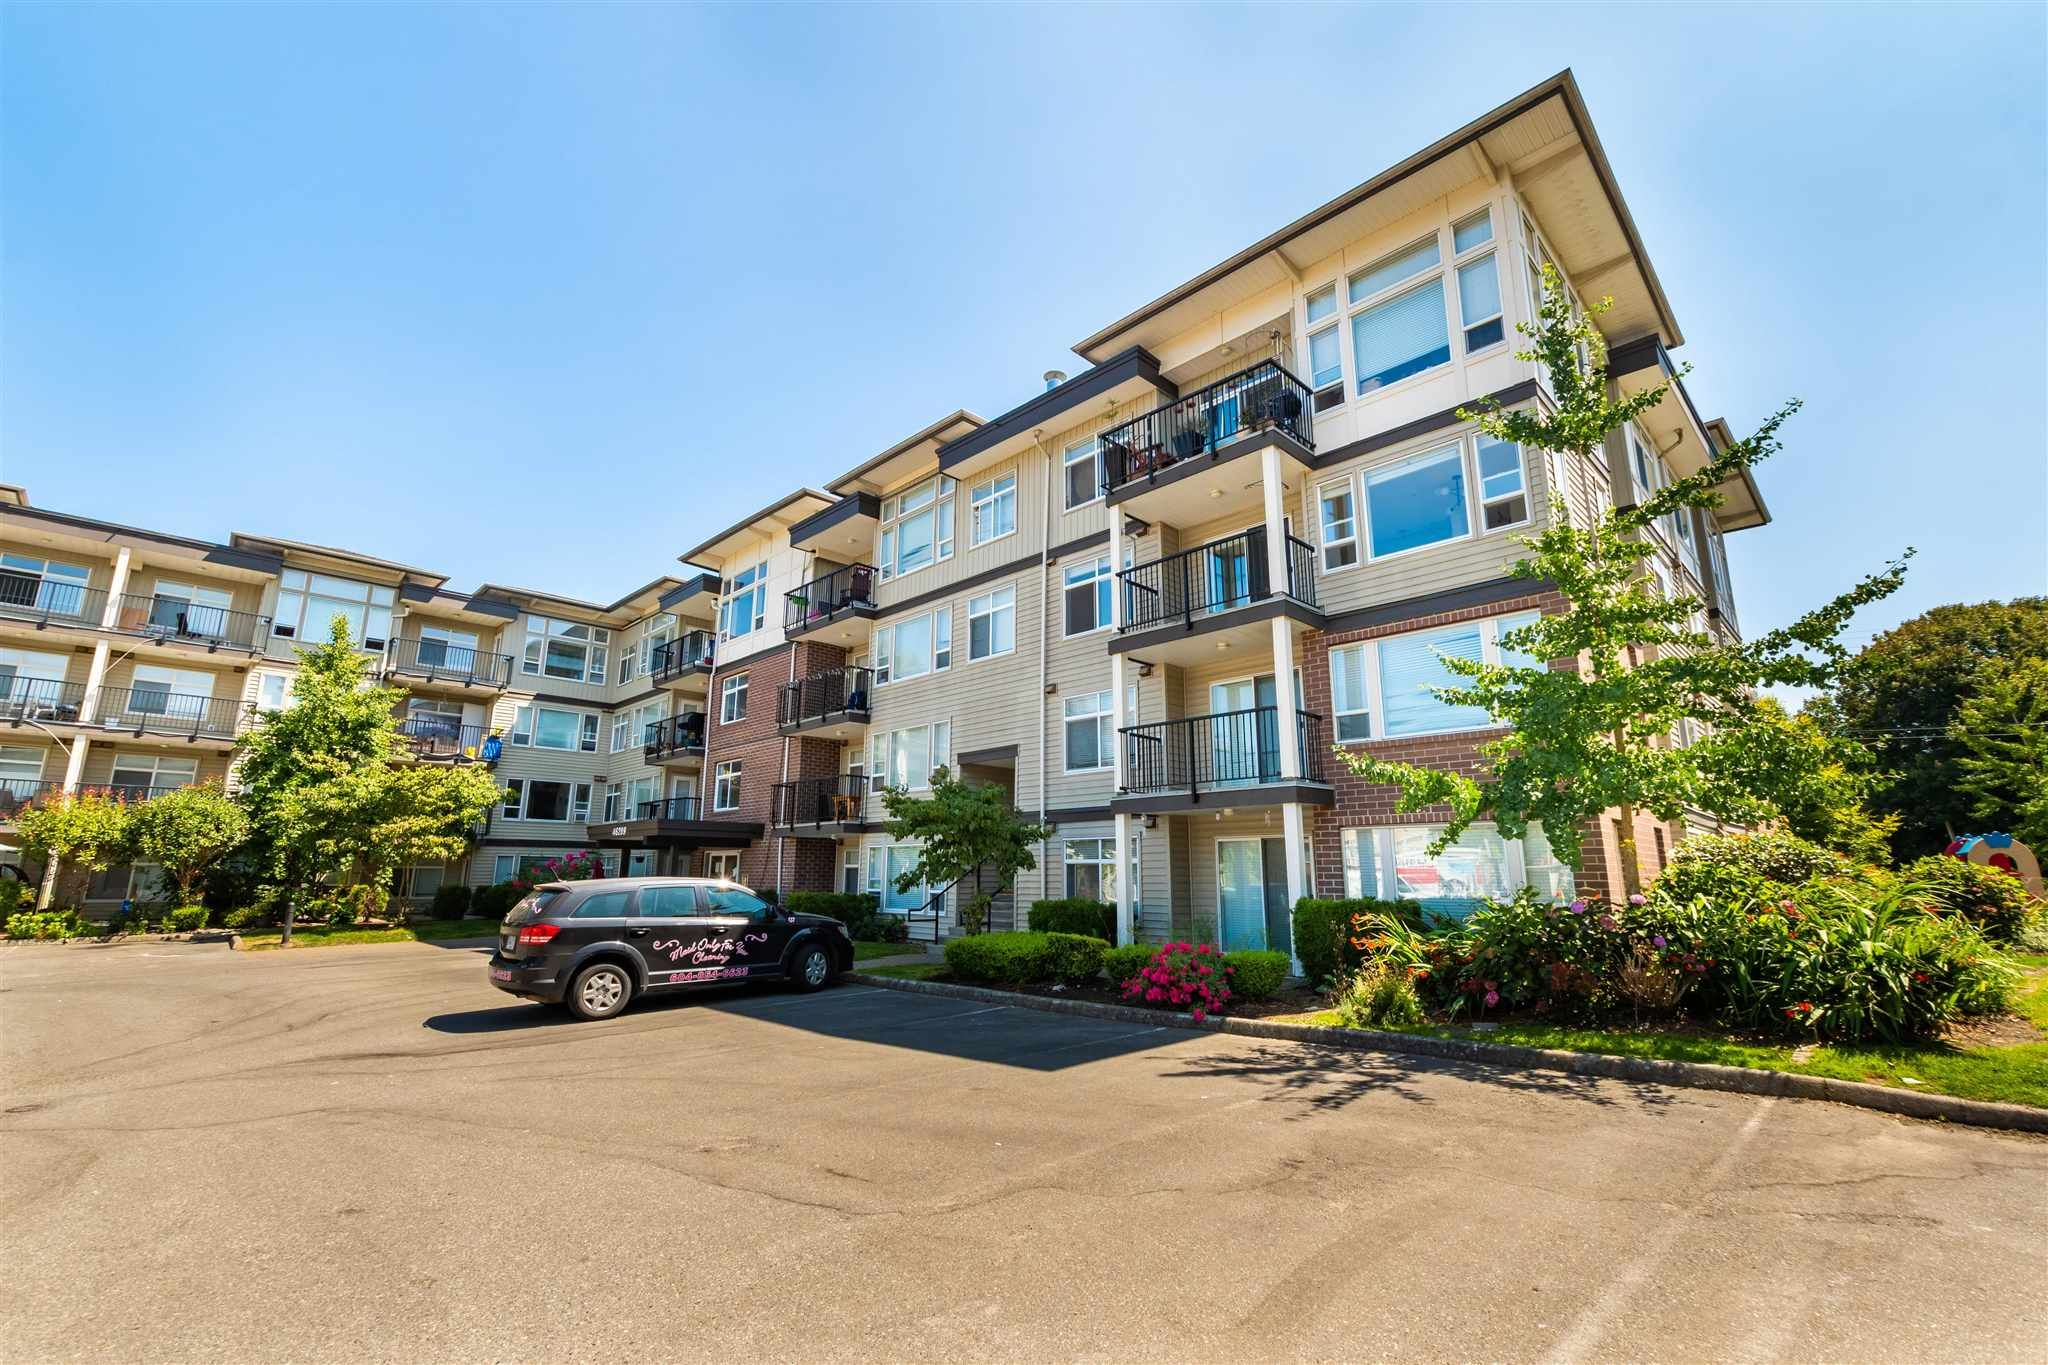 """Main Photo: 202 46289 YALE Road in Chilliwack: Chilliwack E Young-Yale Condo for sale in """"NEWMARK - PHASE III"""" : MLS®# R2605785"""